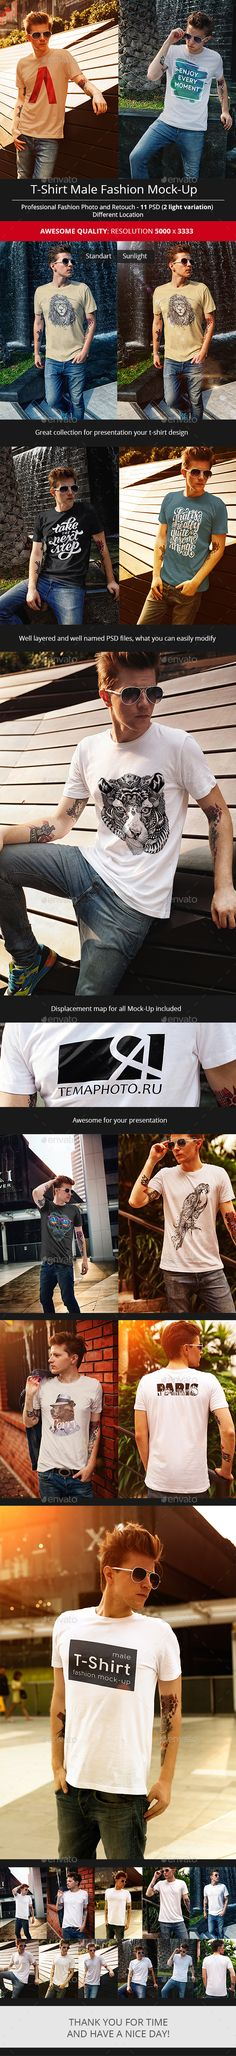 Male T-Shirt Fashion Mock-Up. Download here: http://graphicriver.net/item/male-tshirt-fashion-mockup/16659898?ref=ksioks